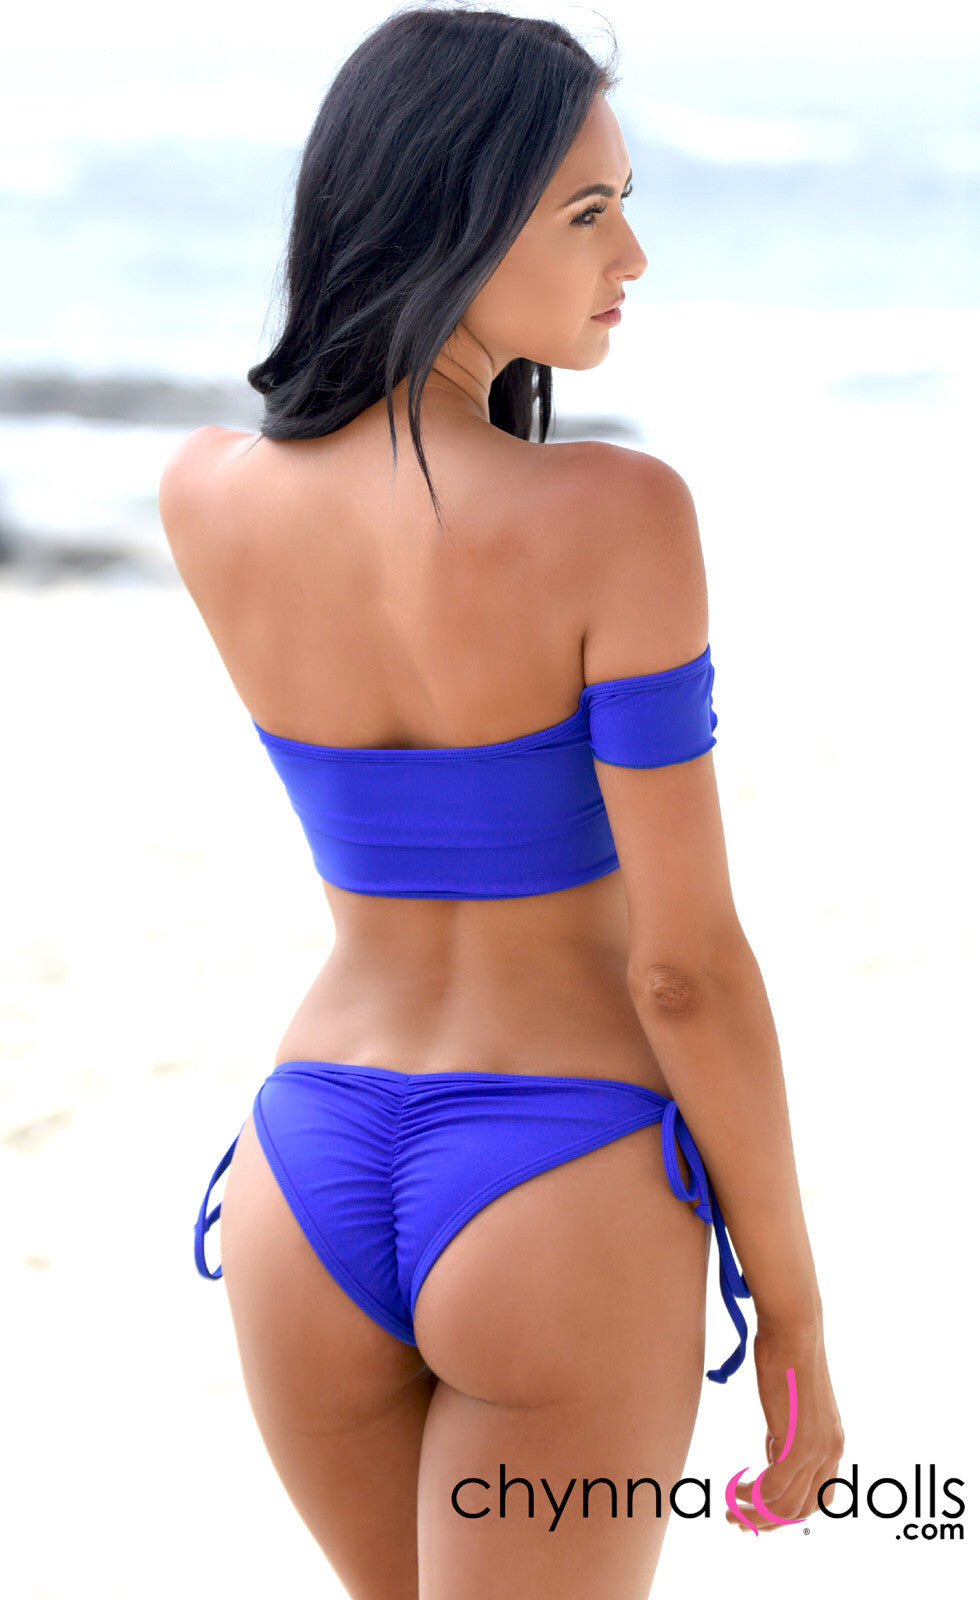 Savannah: Off the Shoulder Lace Up Top and String Bottom in Royal Blue